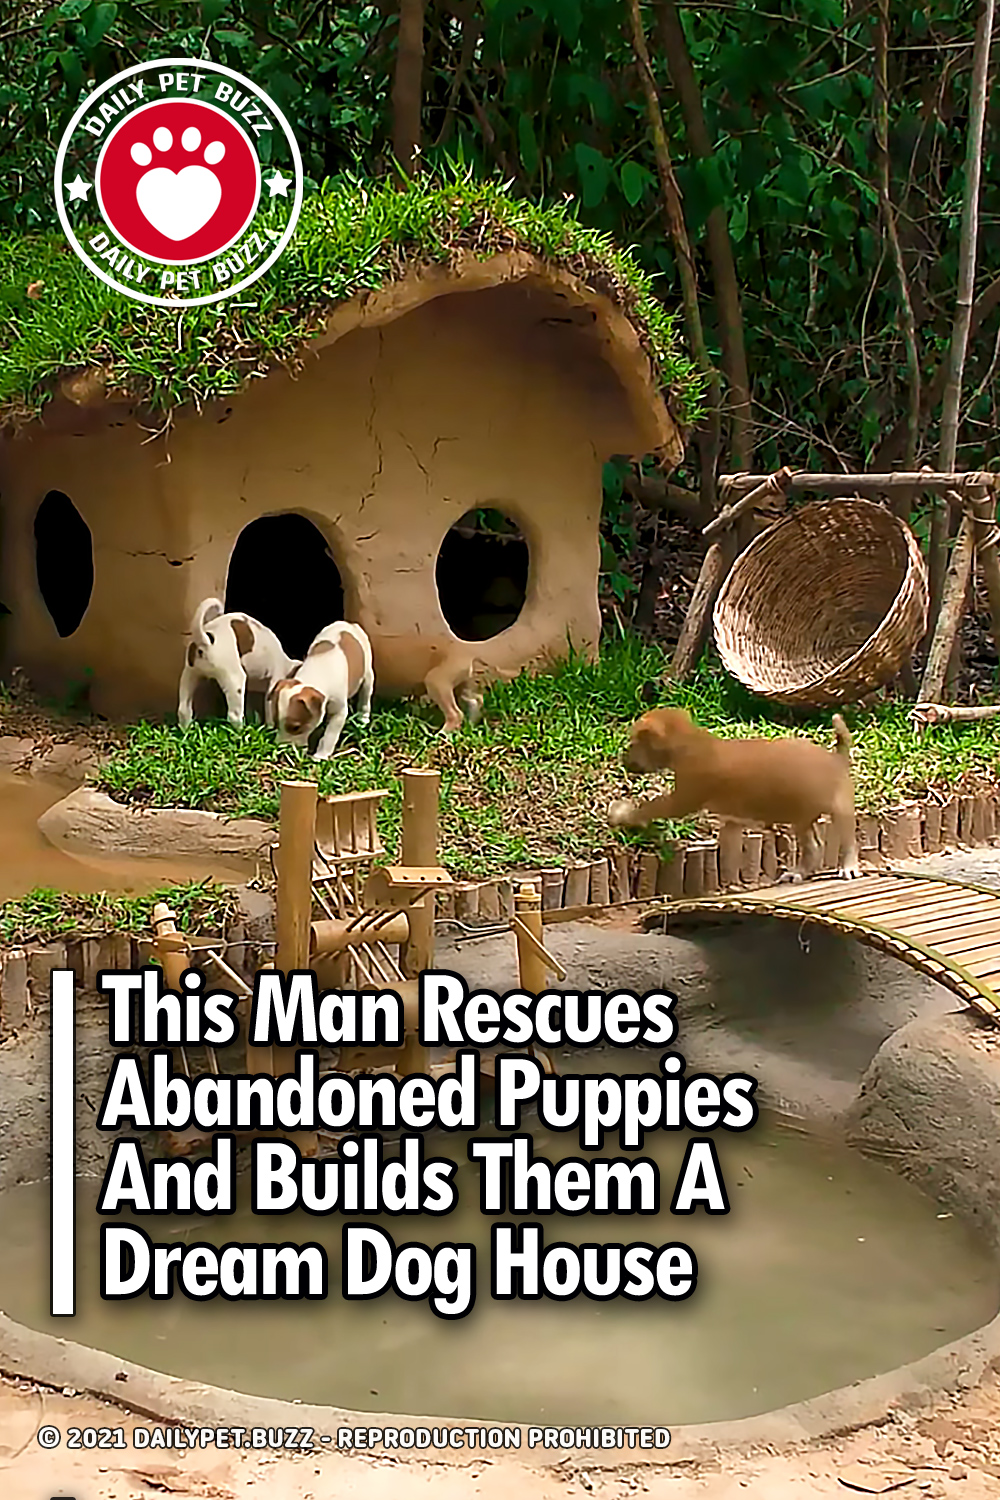 This Man Rescues Abandoned Puppies And Builds Them A Dream Dog House